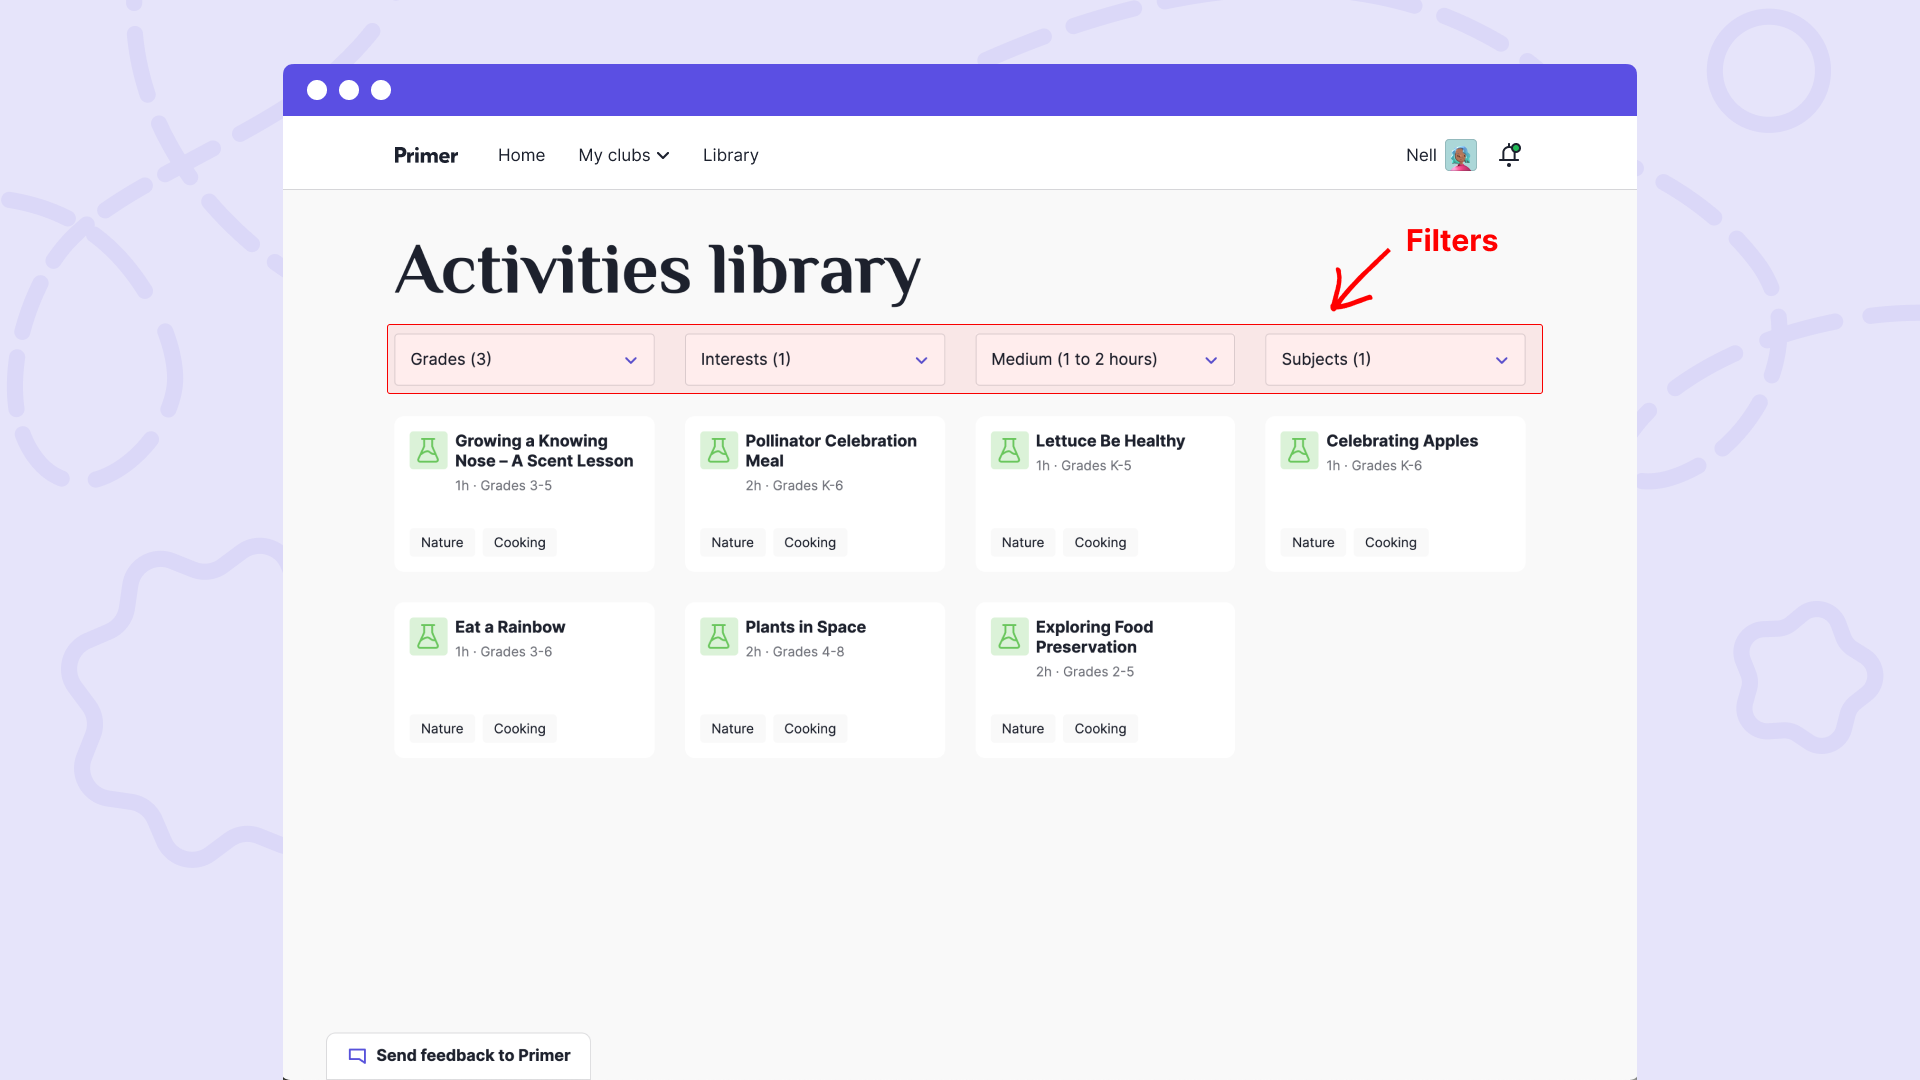 Activities library filters